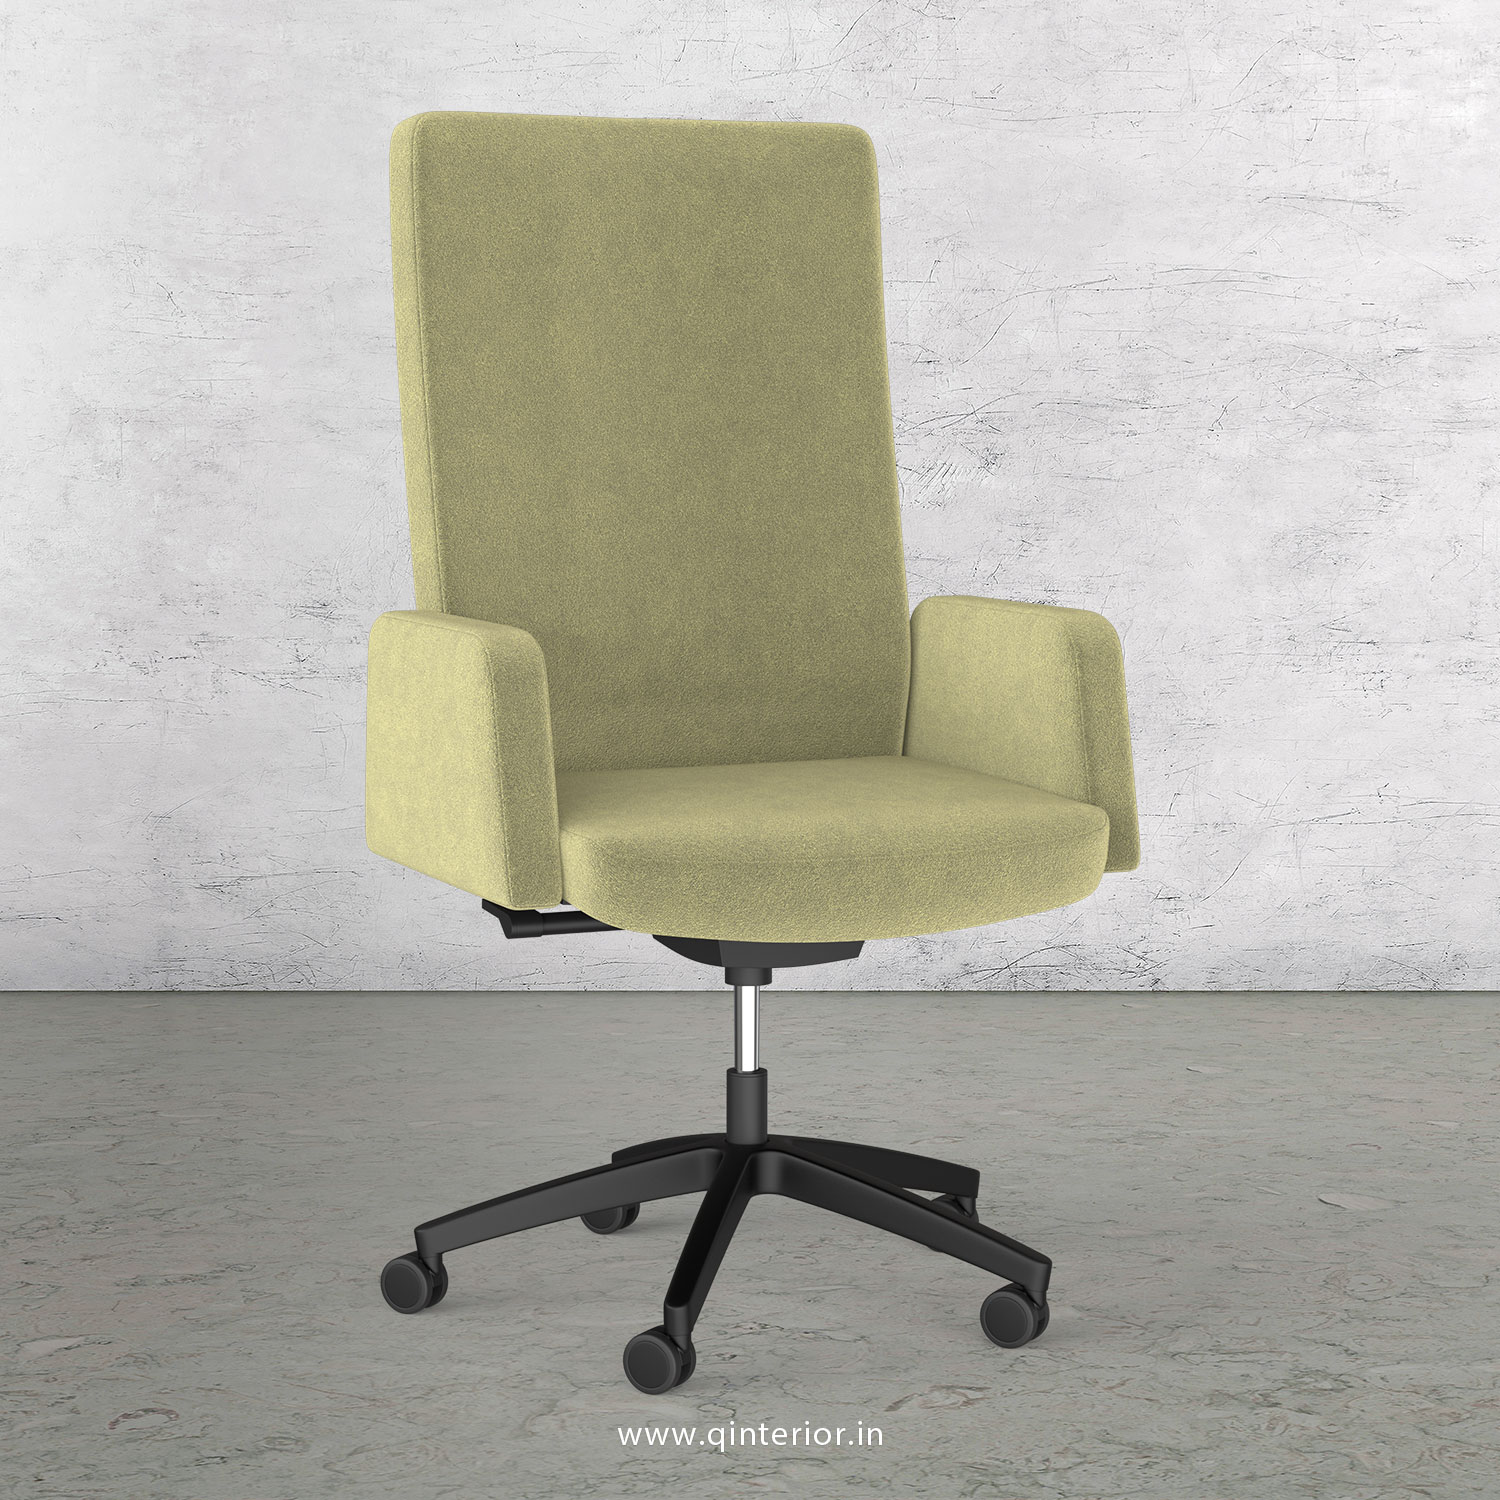 Office ArmRest Chair in Velvet Leather - OEC001